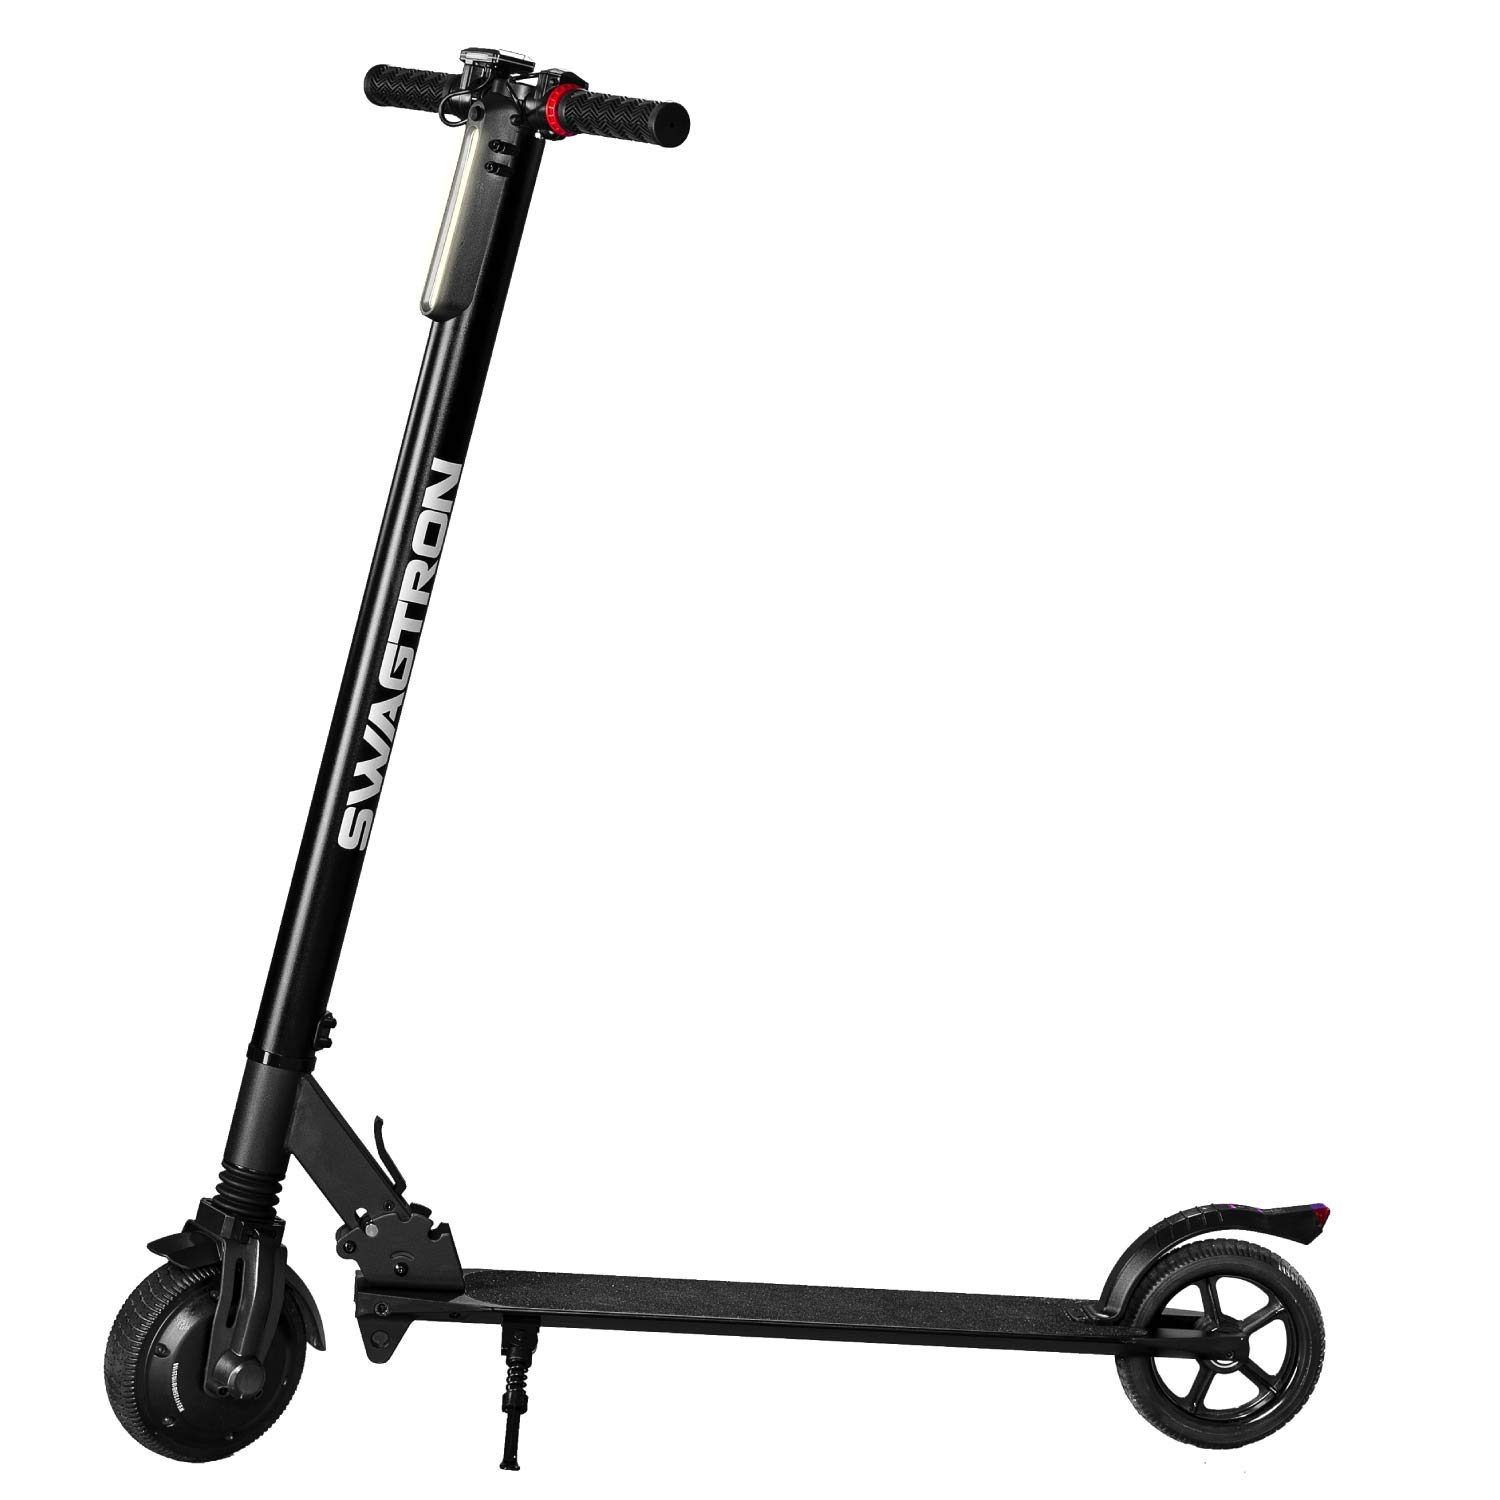 Swagtron Swagger Classic Foldable Kids Electric Scooter, Cruise Control, 200W Hub Motor, Maintenance-Free Tires & More (SG-2) by Swagtron